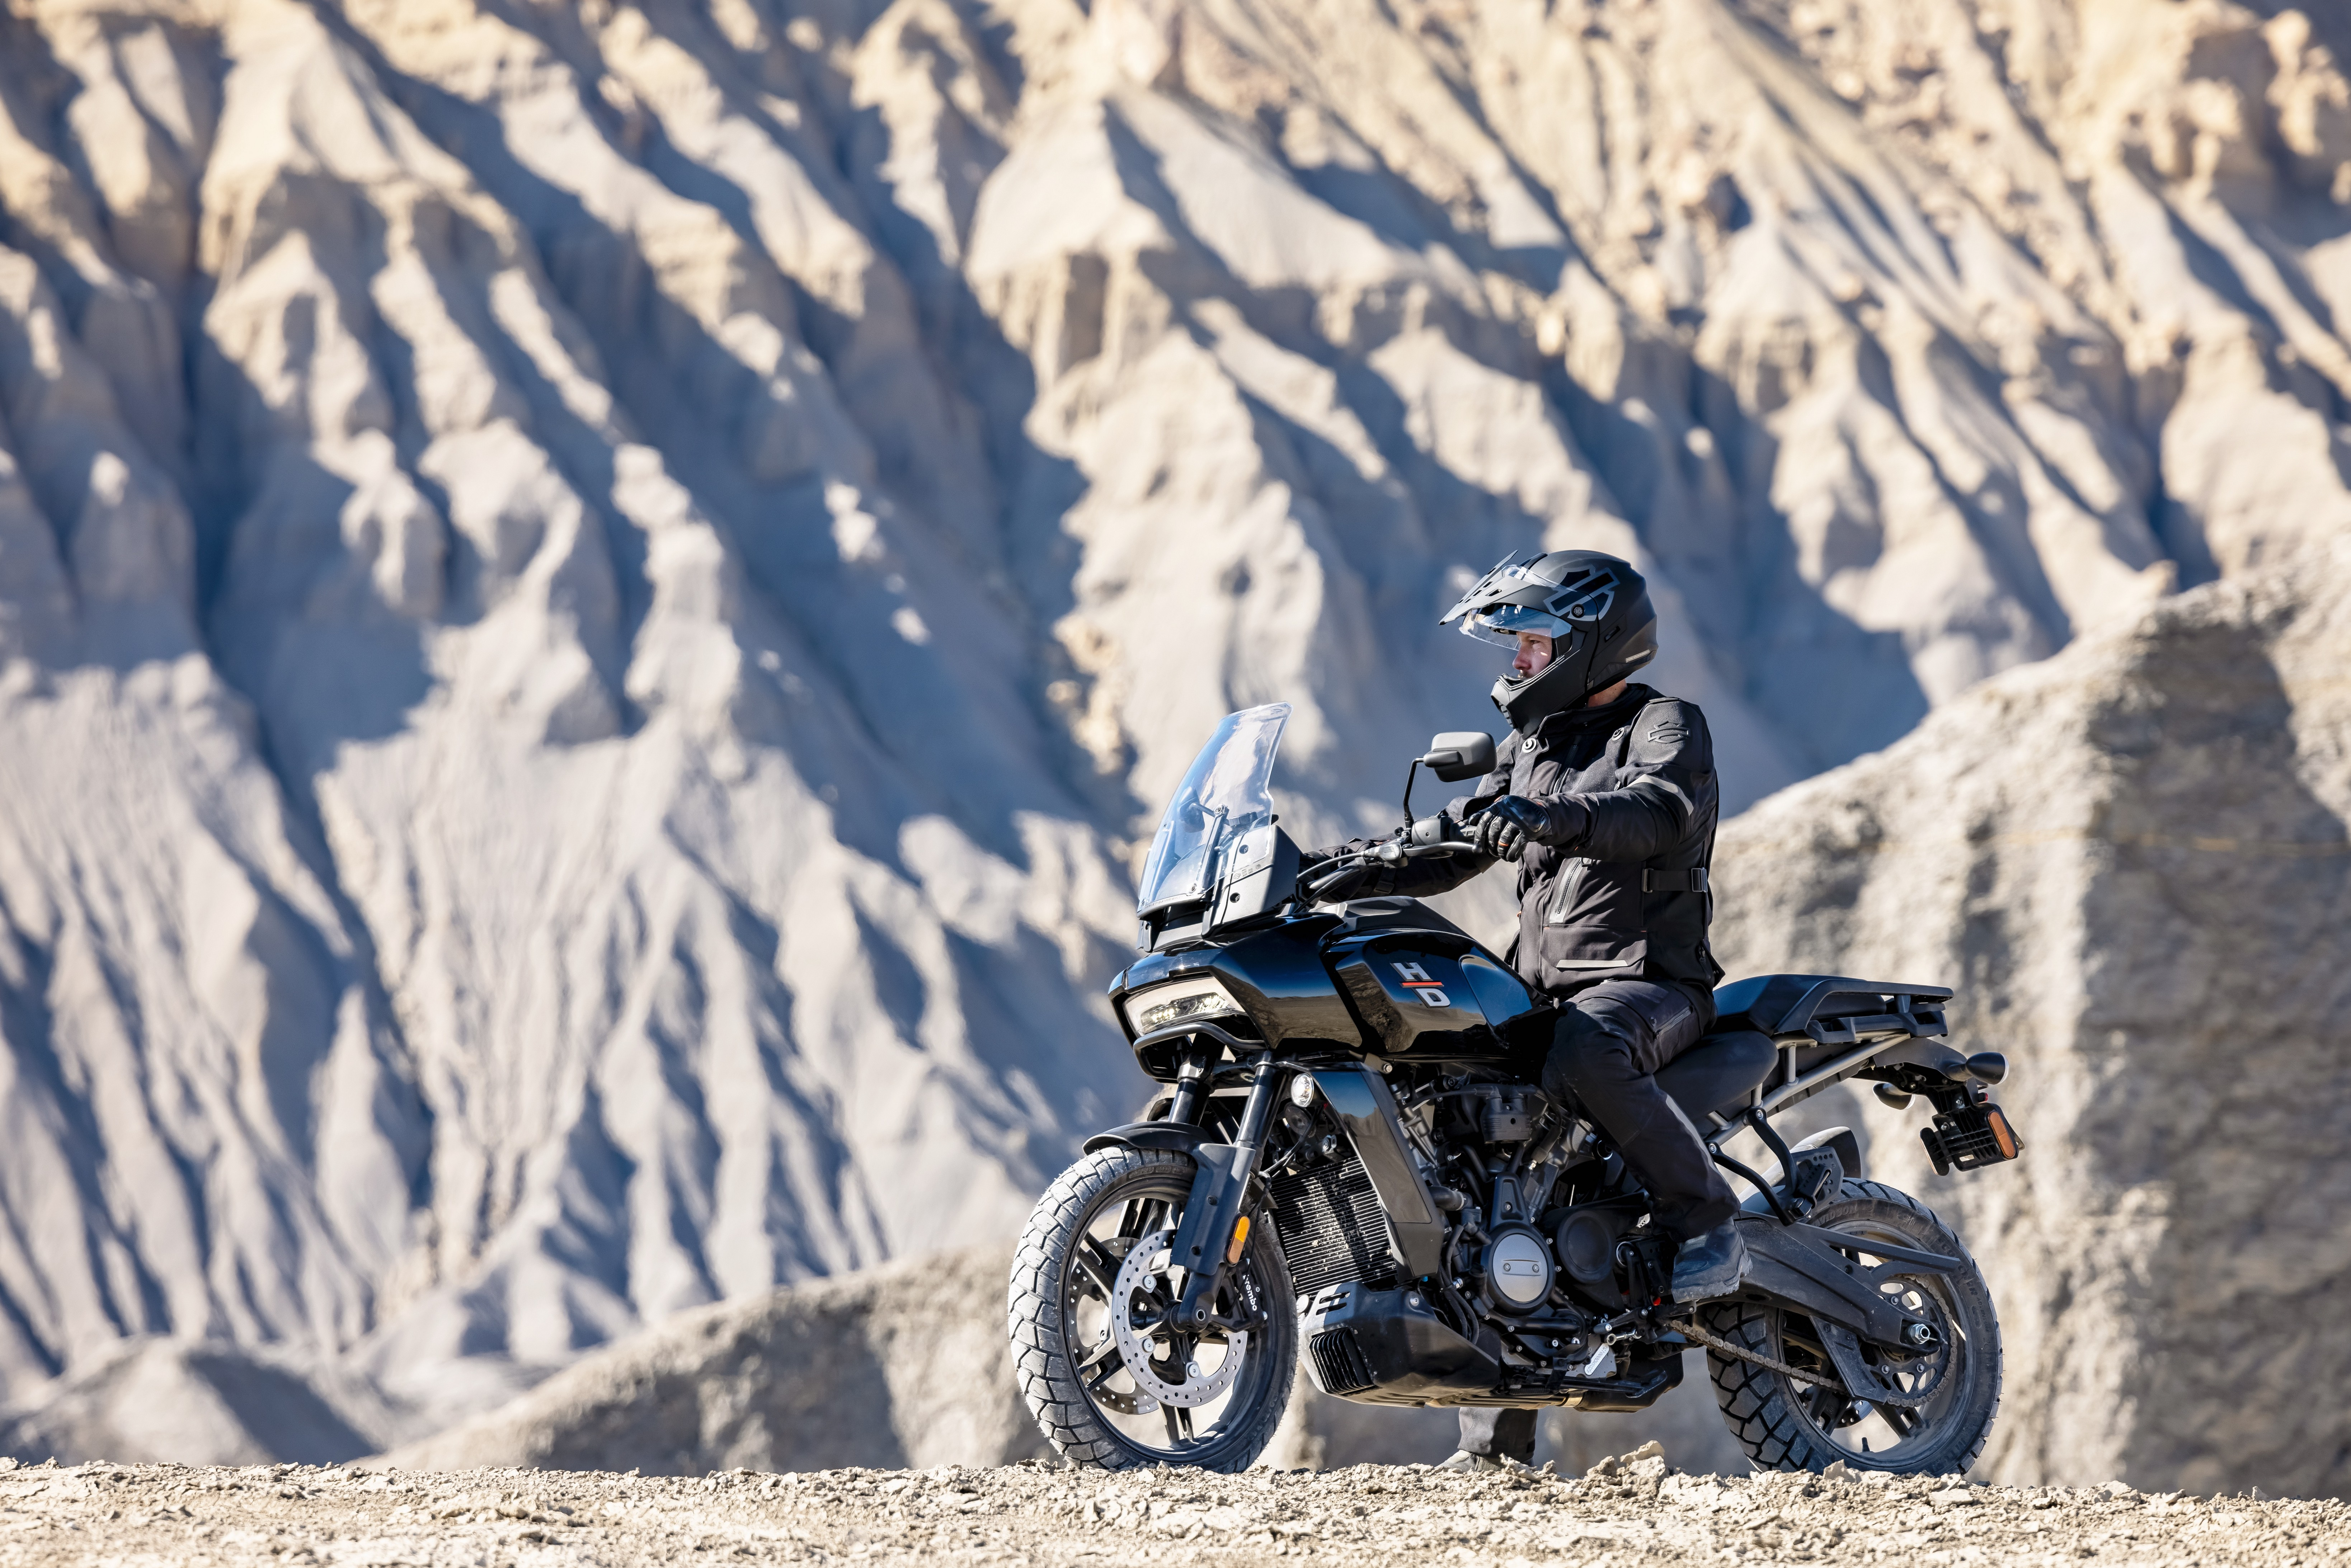 The 2021 Pan America 1250 is Harley-Davidson's first ever adventure bike